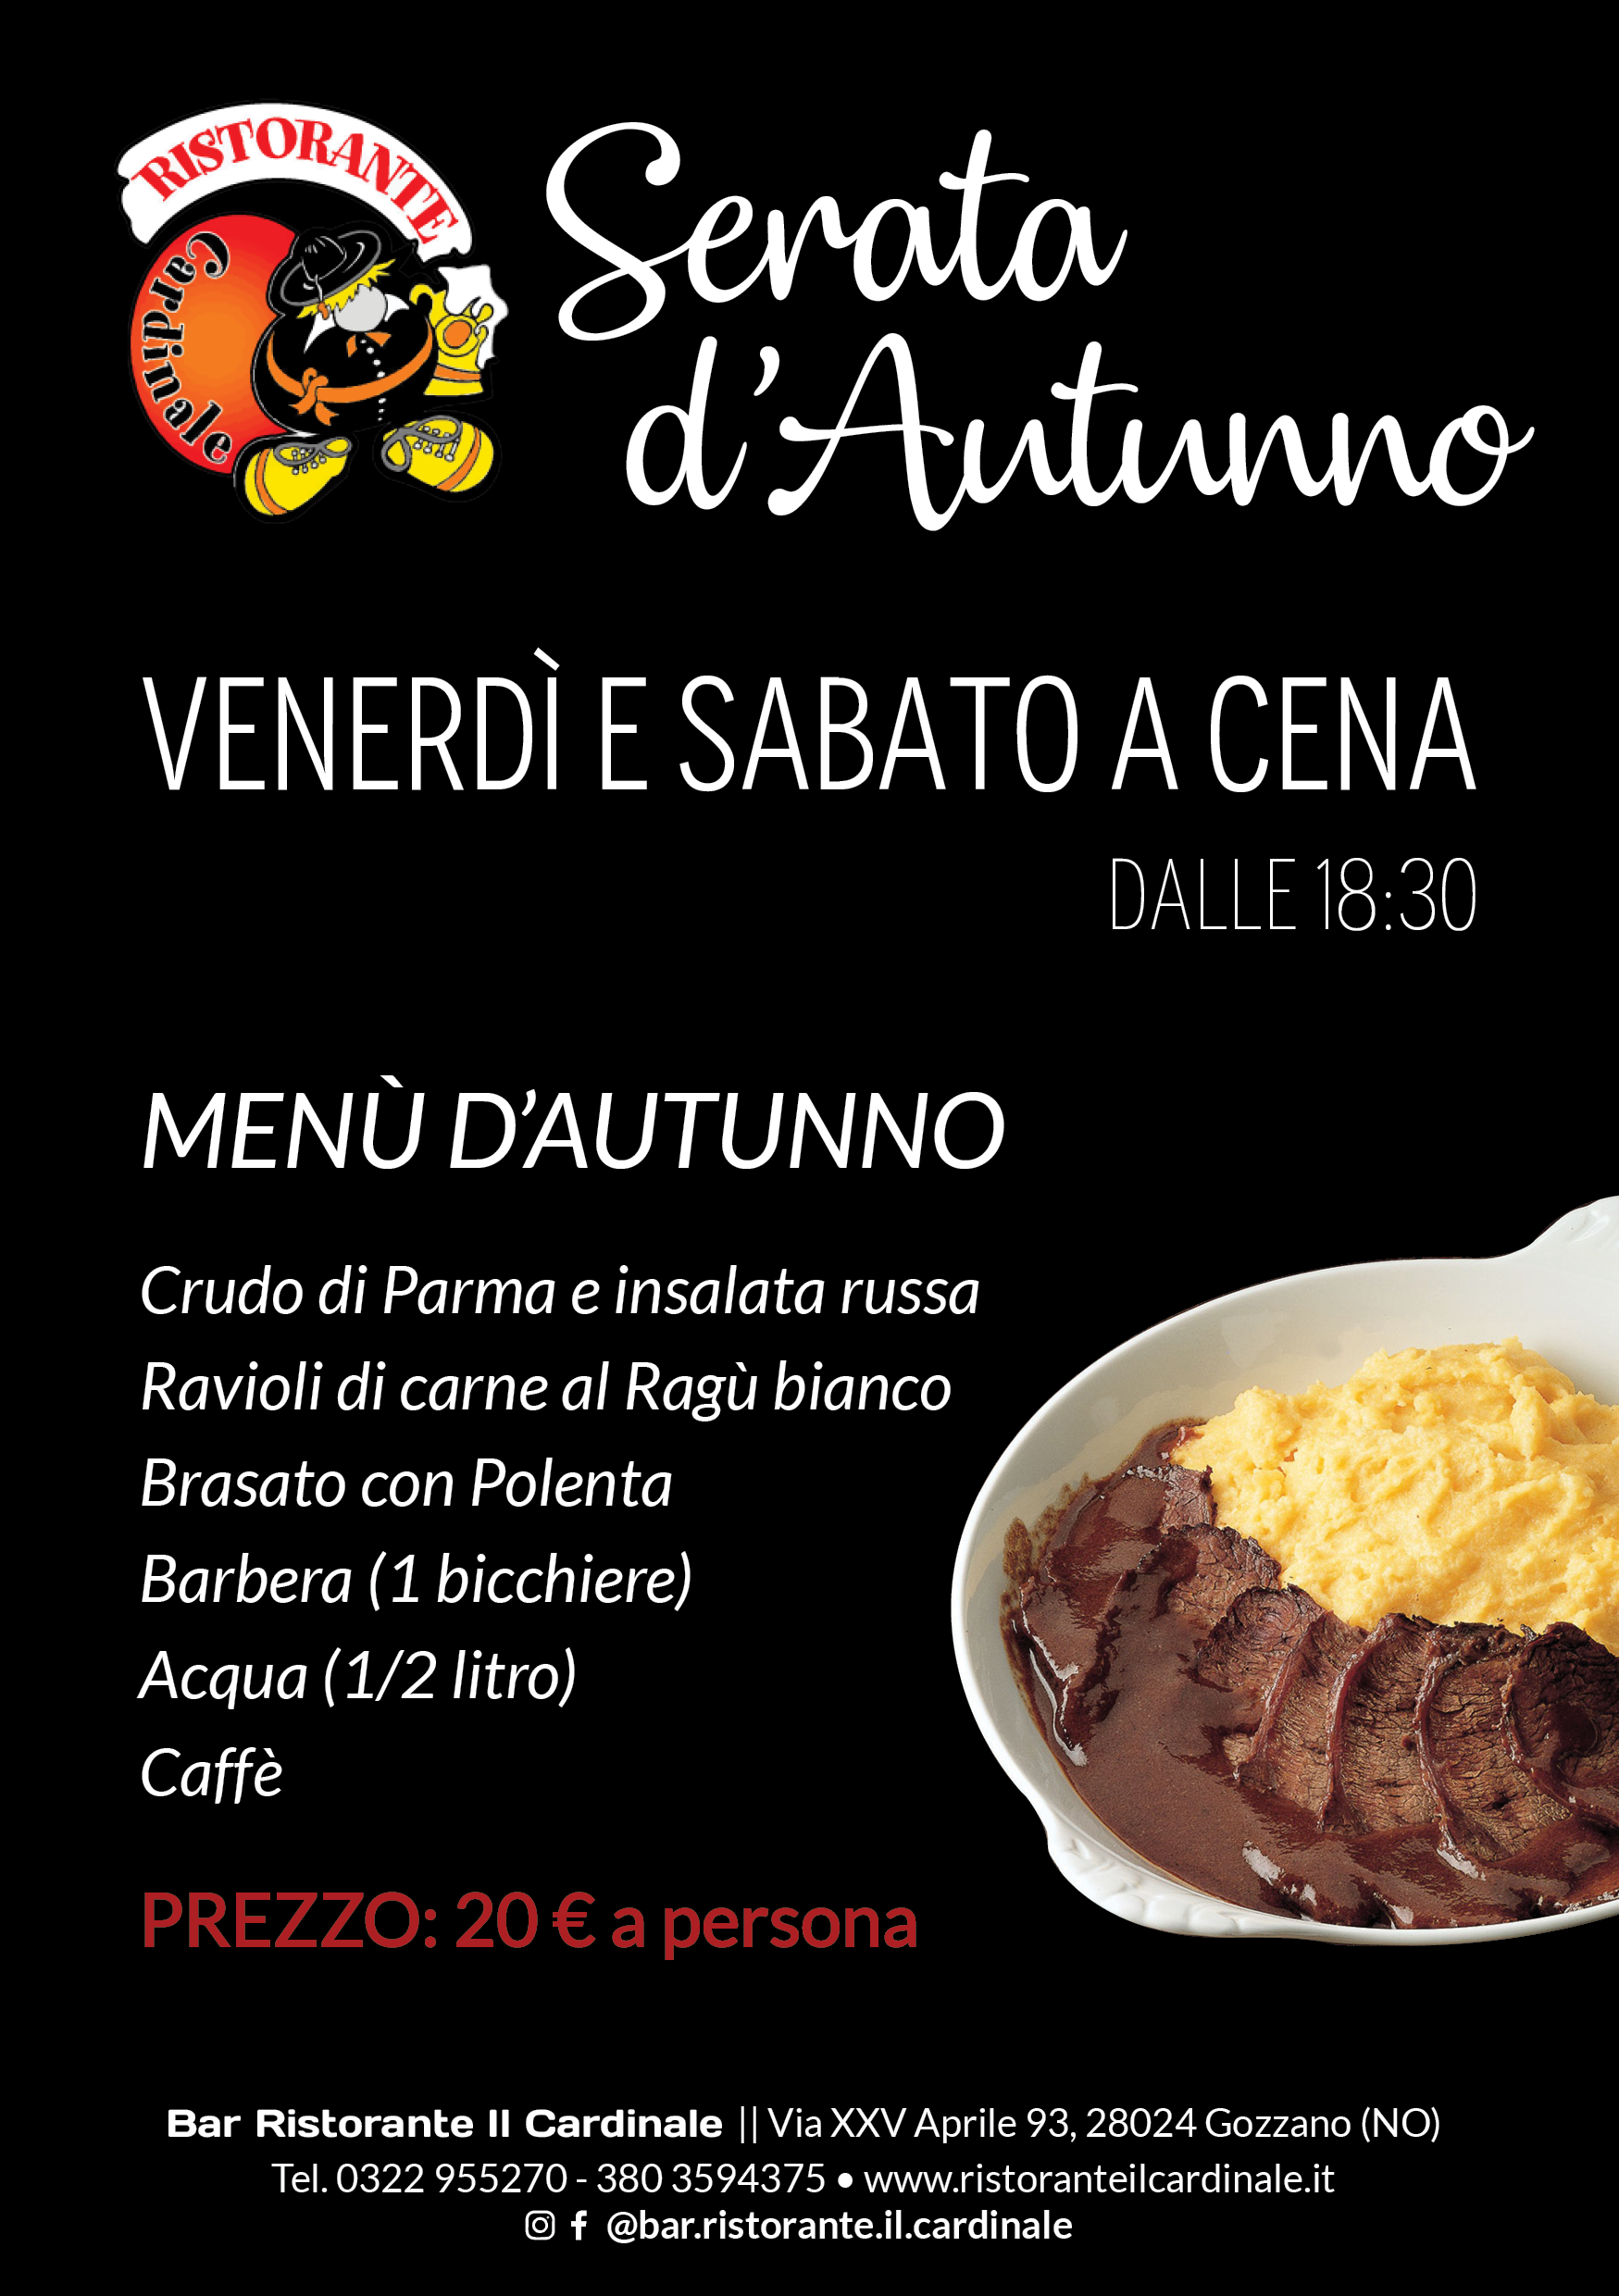 Serate d'Autunno 2020